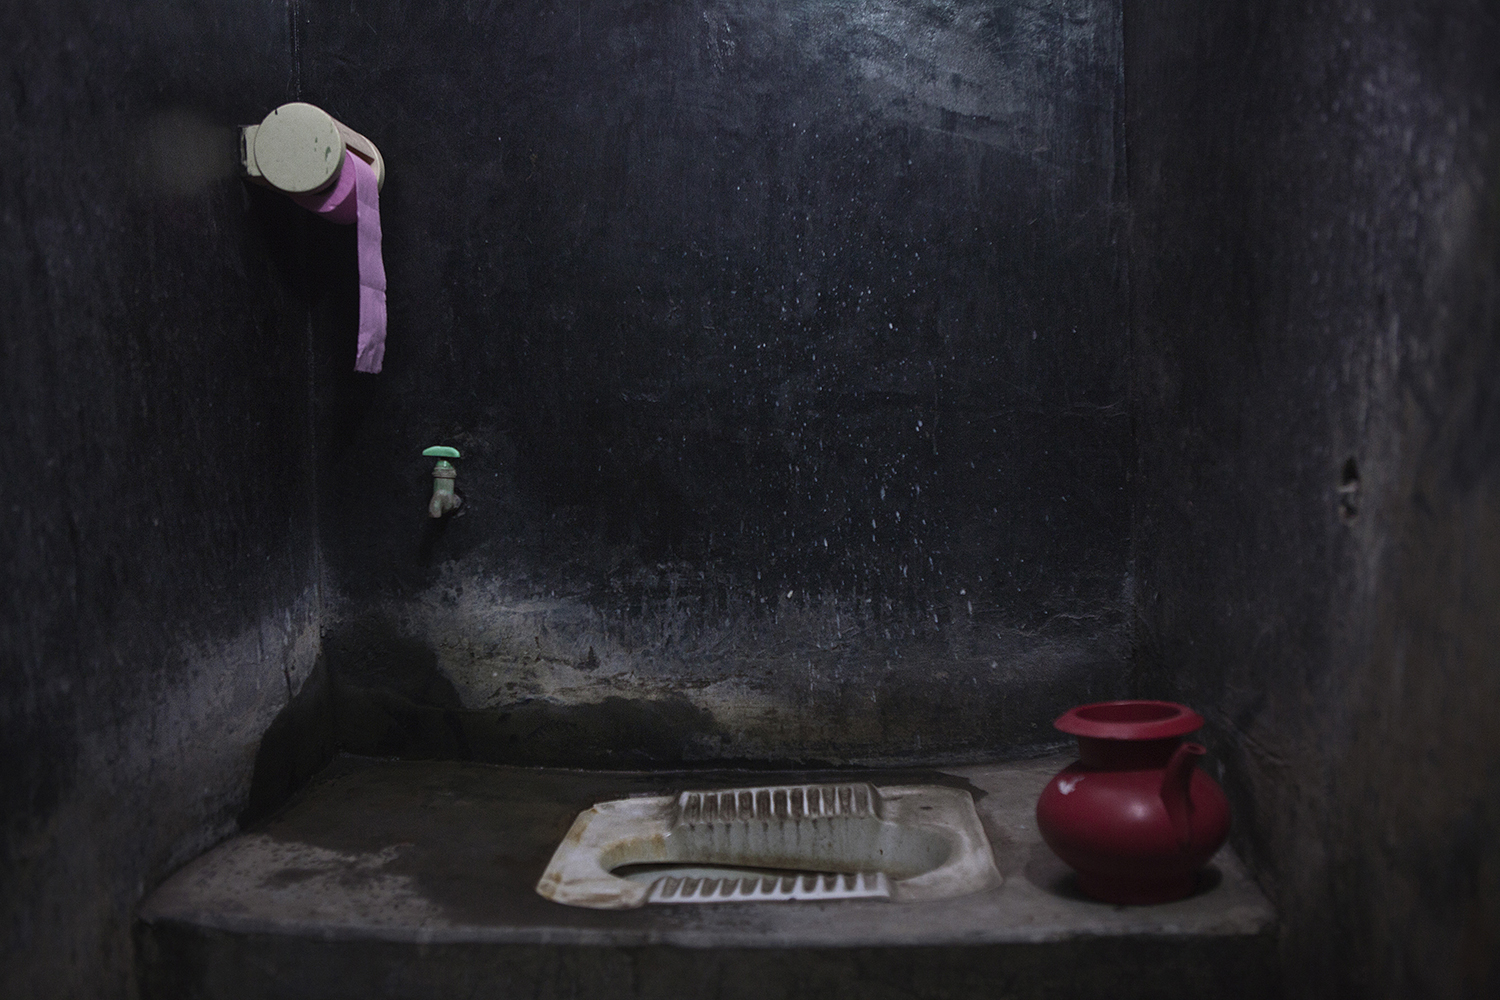 The bathroom at Sohag's house. Dhaka city. © Raffele Petralla